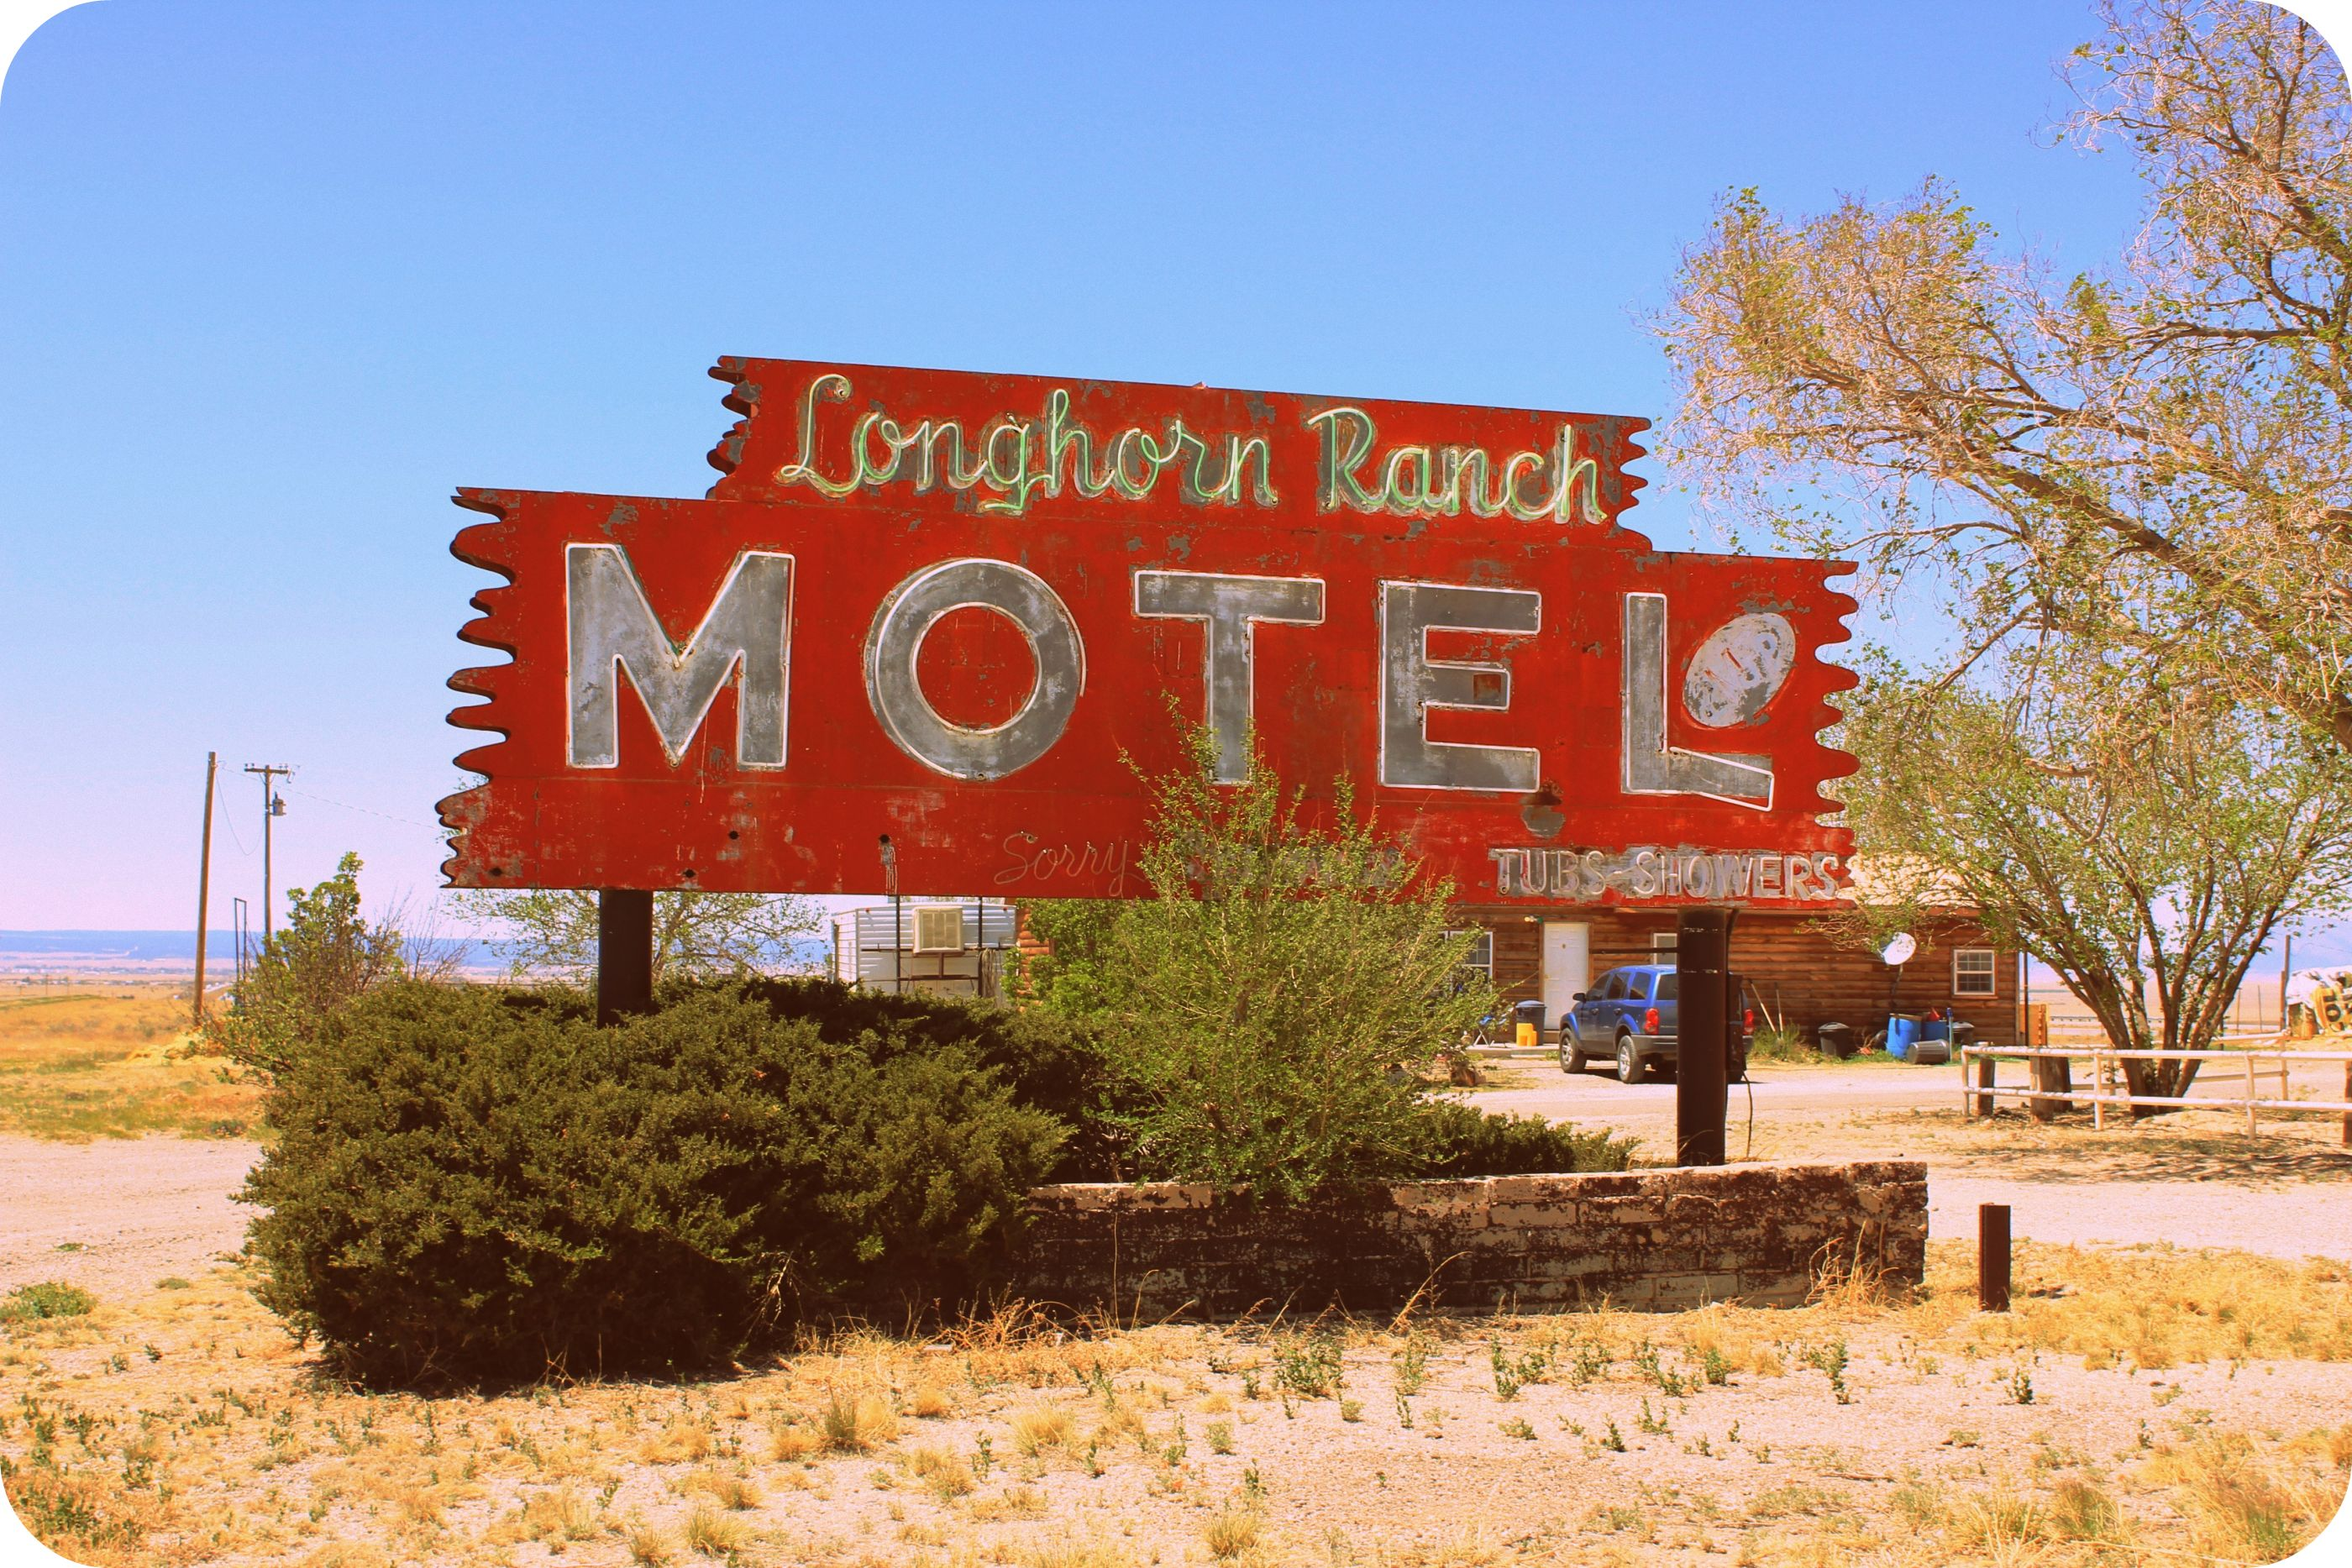 Longhorn Ranch Motel - Moriarty, New Mexico U.S.A. - April 30, 2011